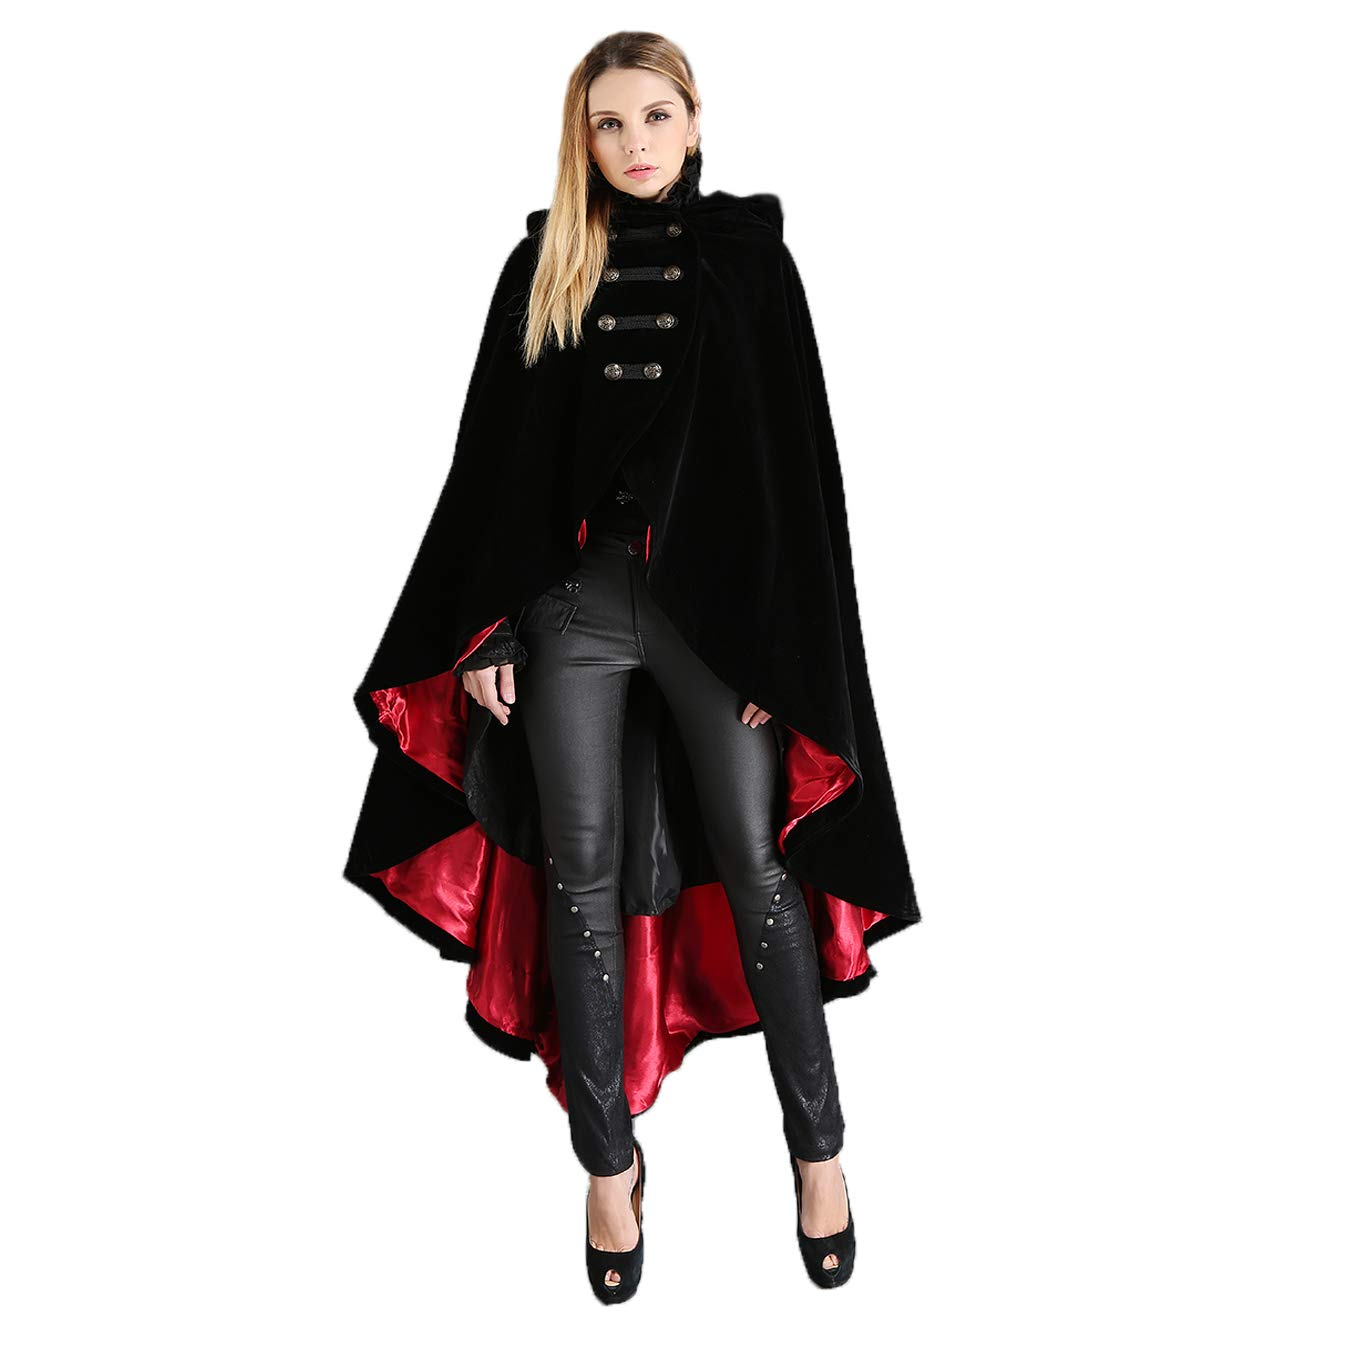 Black and Red Vintage Gothic Double Breasted Hooded Cape Coat Women